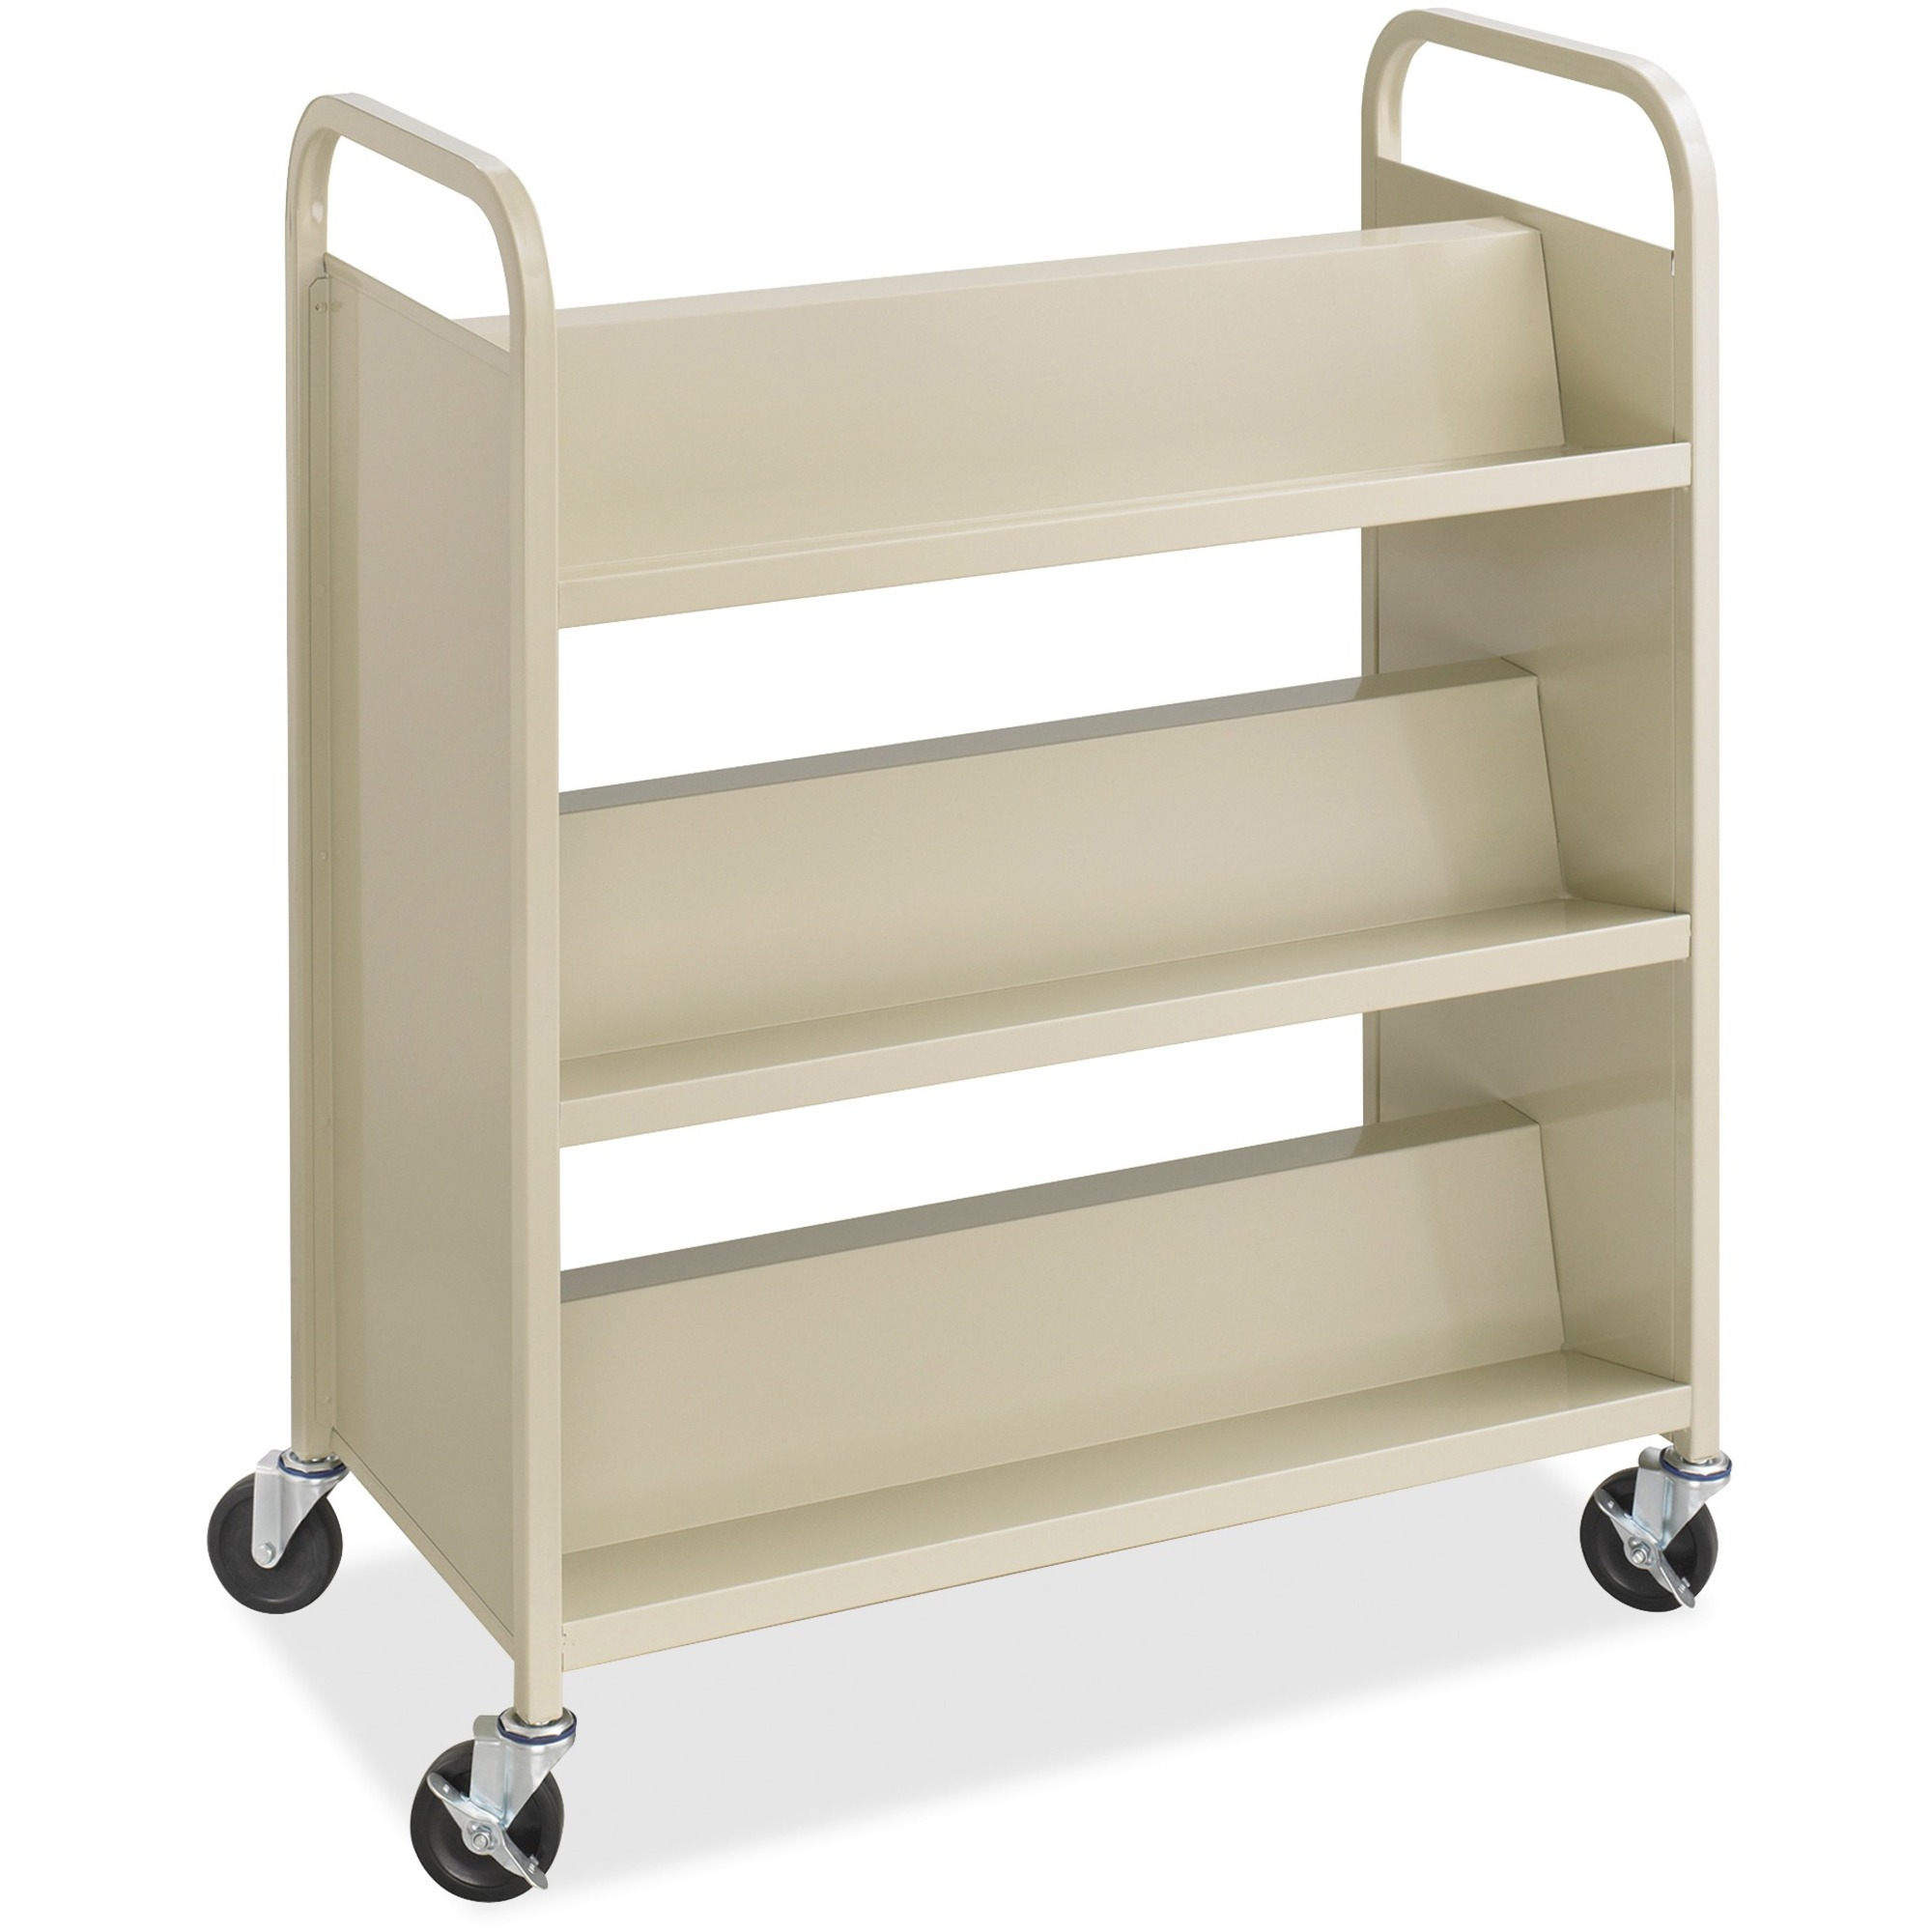 West Coast Office Supplies :: Furniture :: Carts & Stands